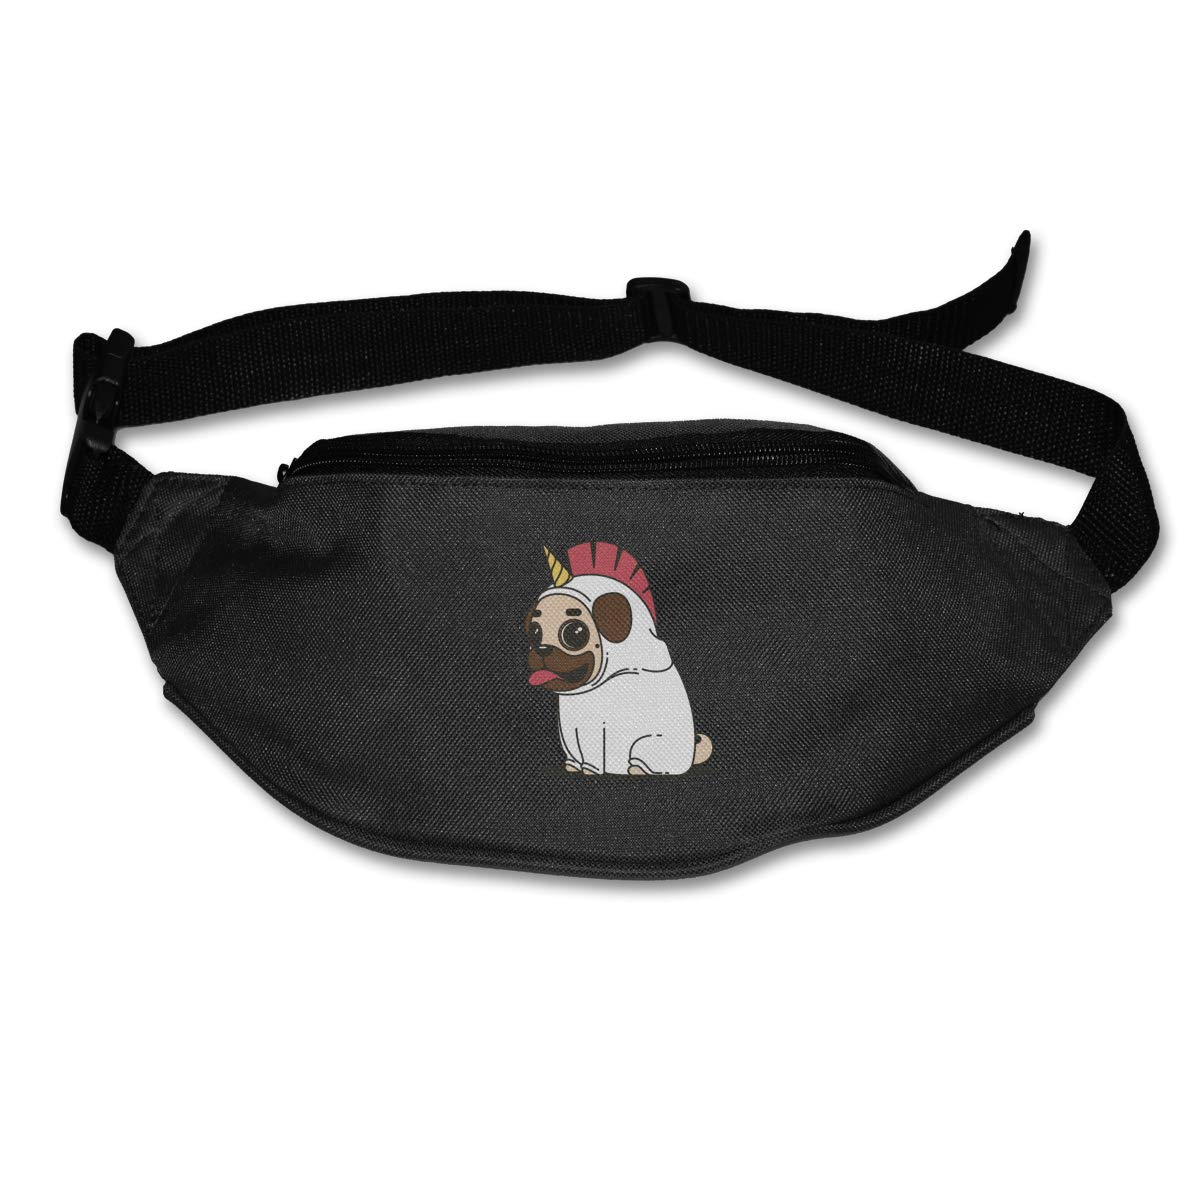 Lovely Unicorn Dog Sport Waist Packs Fanny Pack Adjustable For Run